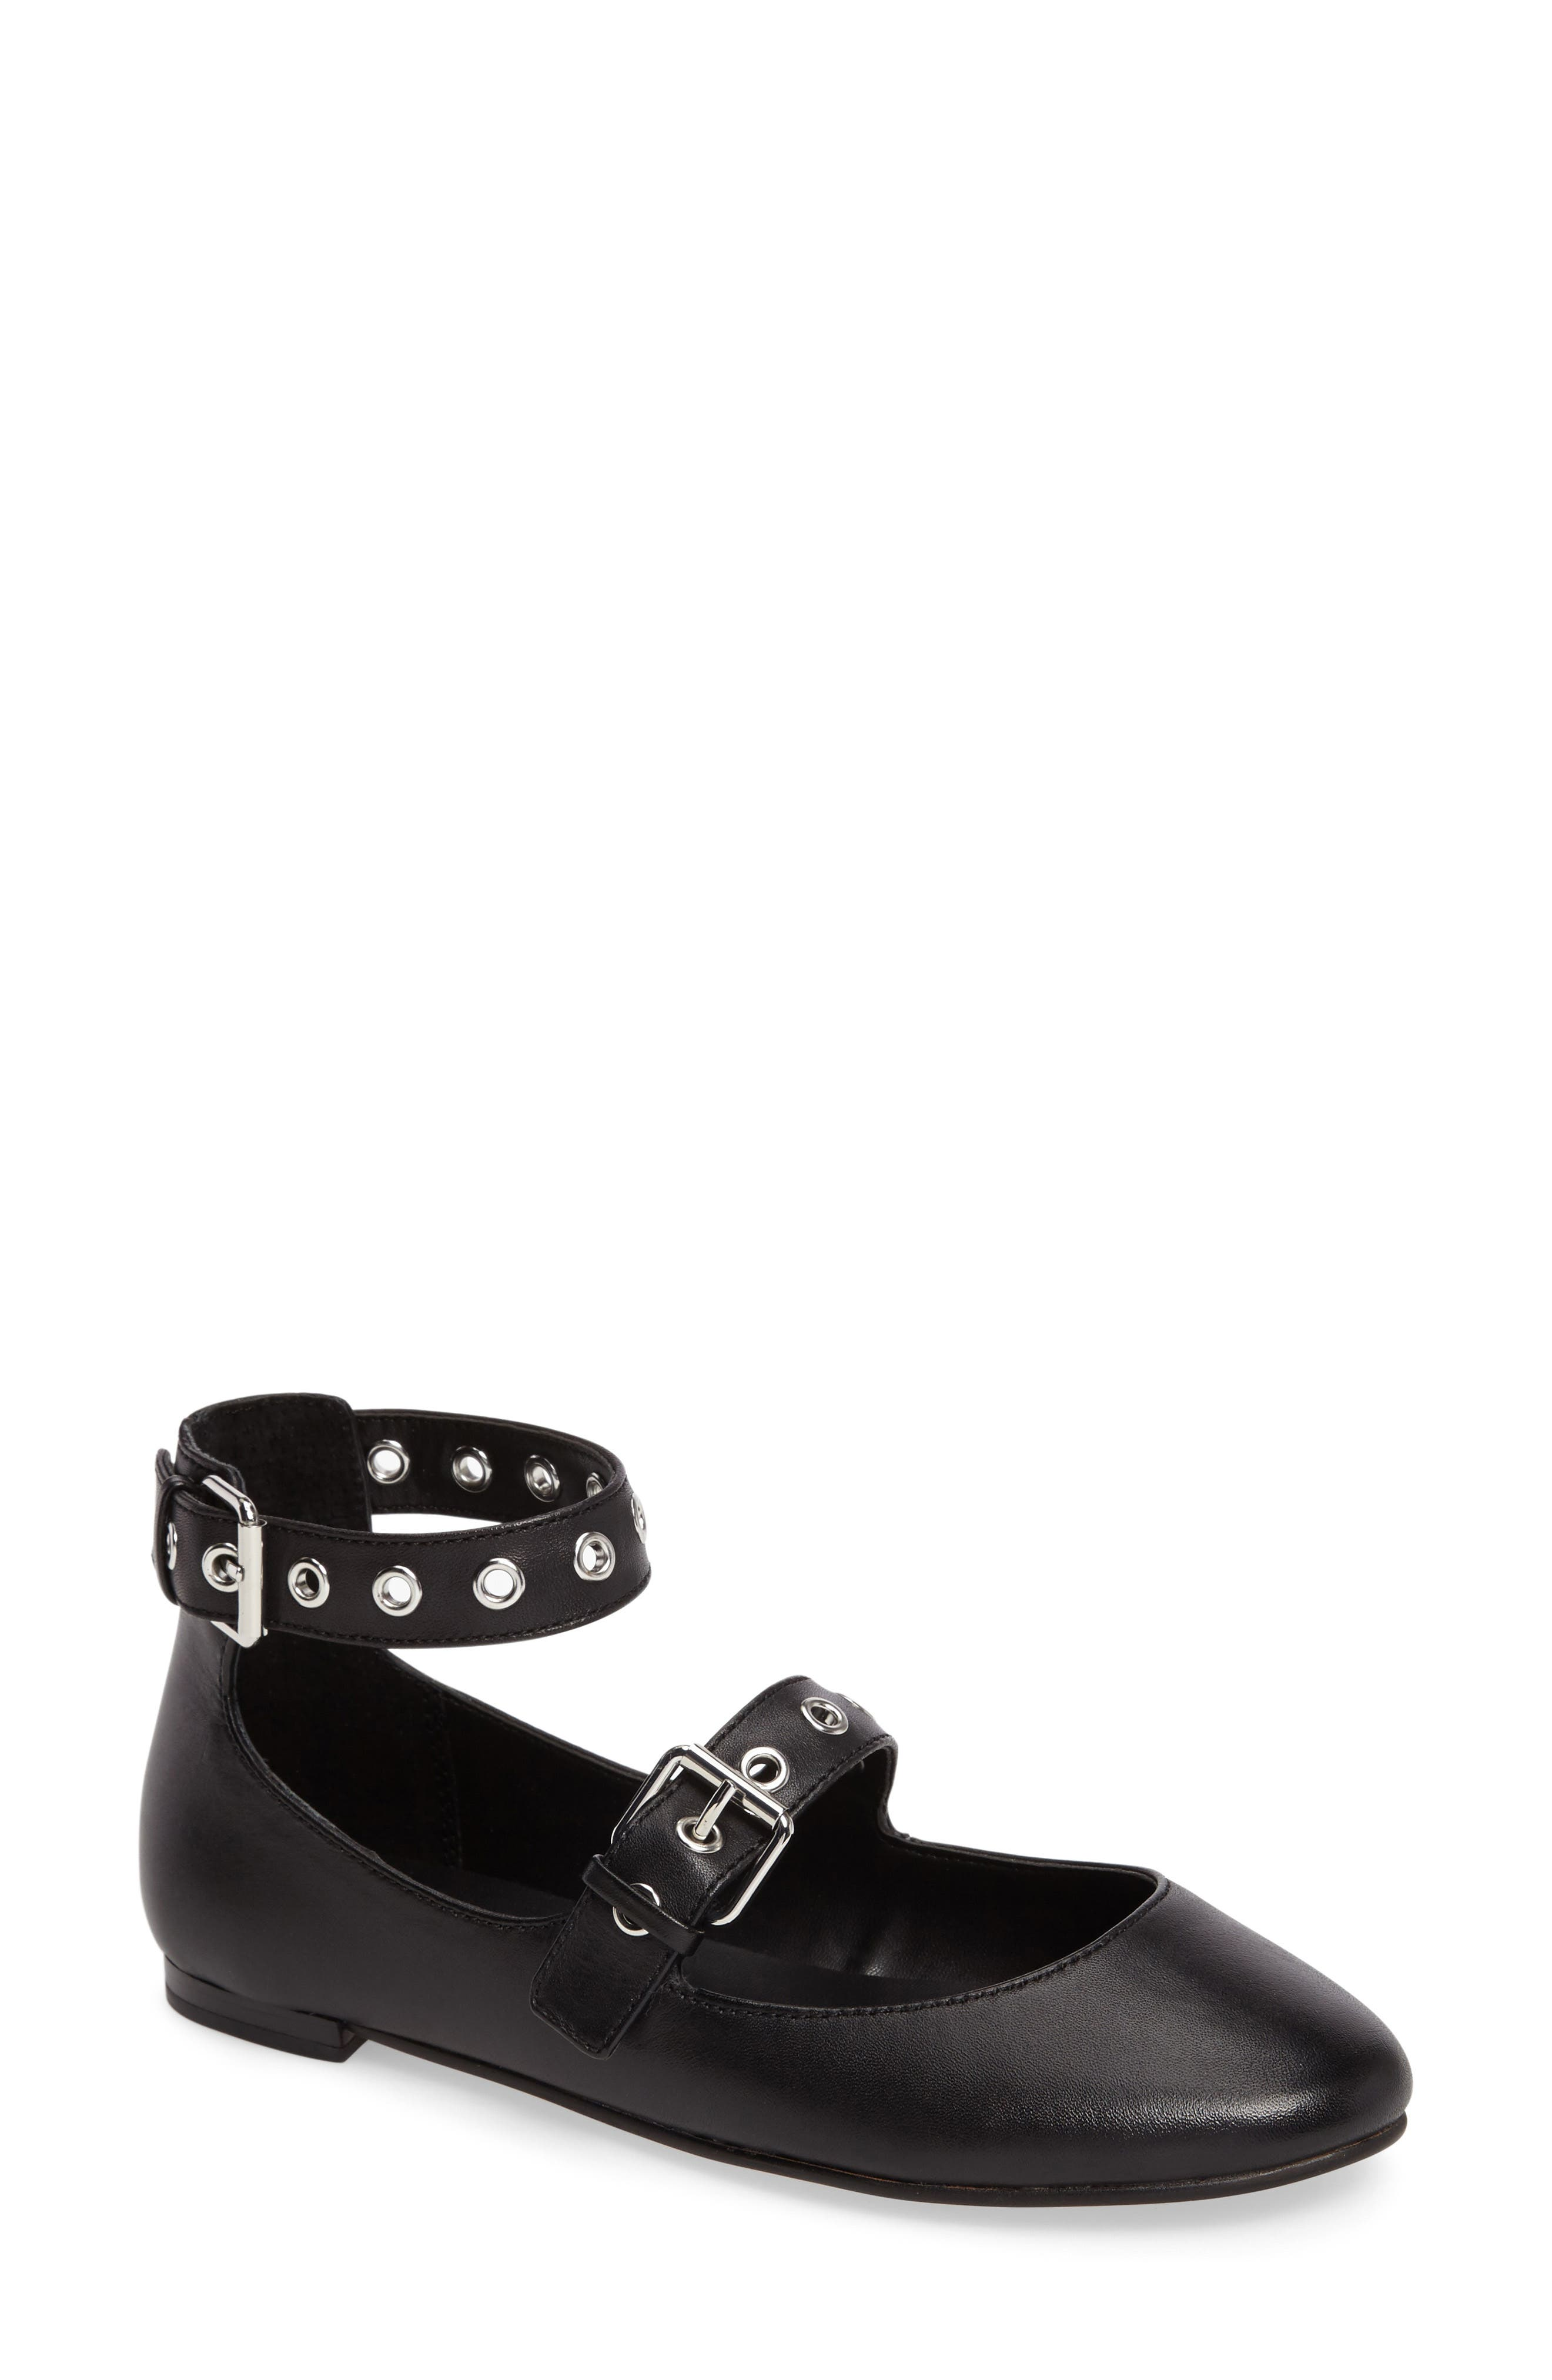 Alternate Image 1 Selected - Rebecca Minkoff Rachel Buckle Strap Flat (Women)